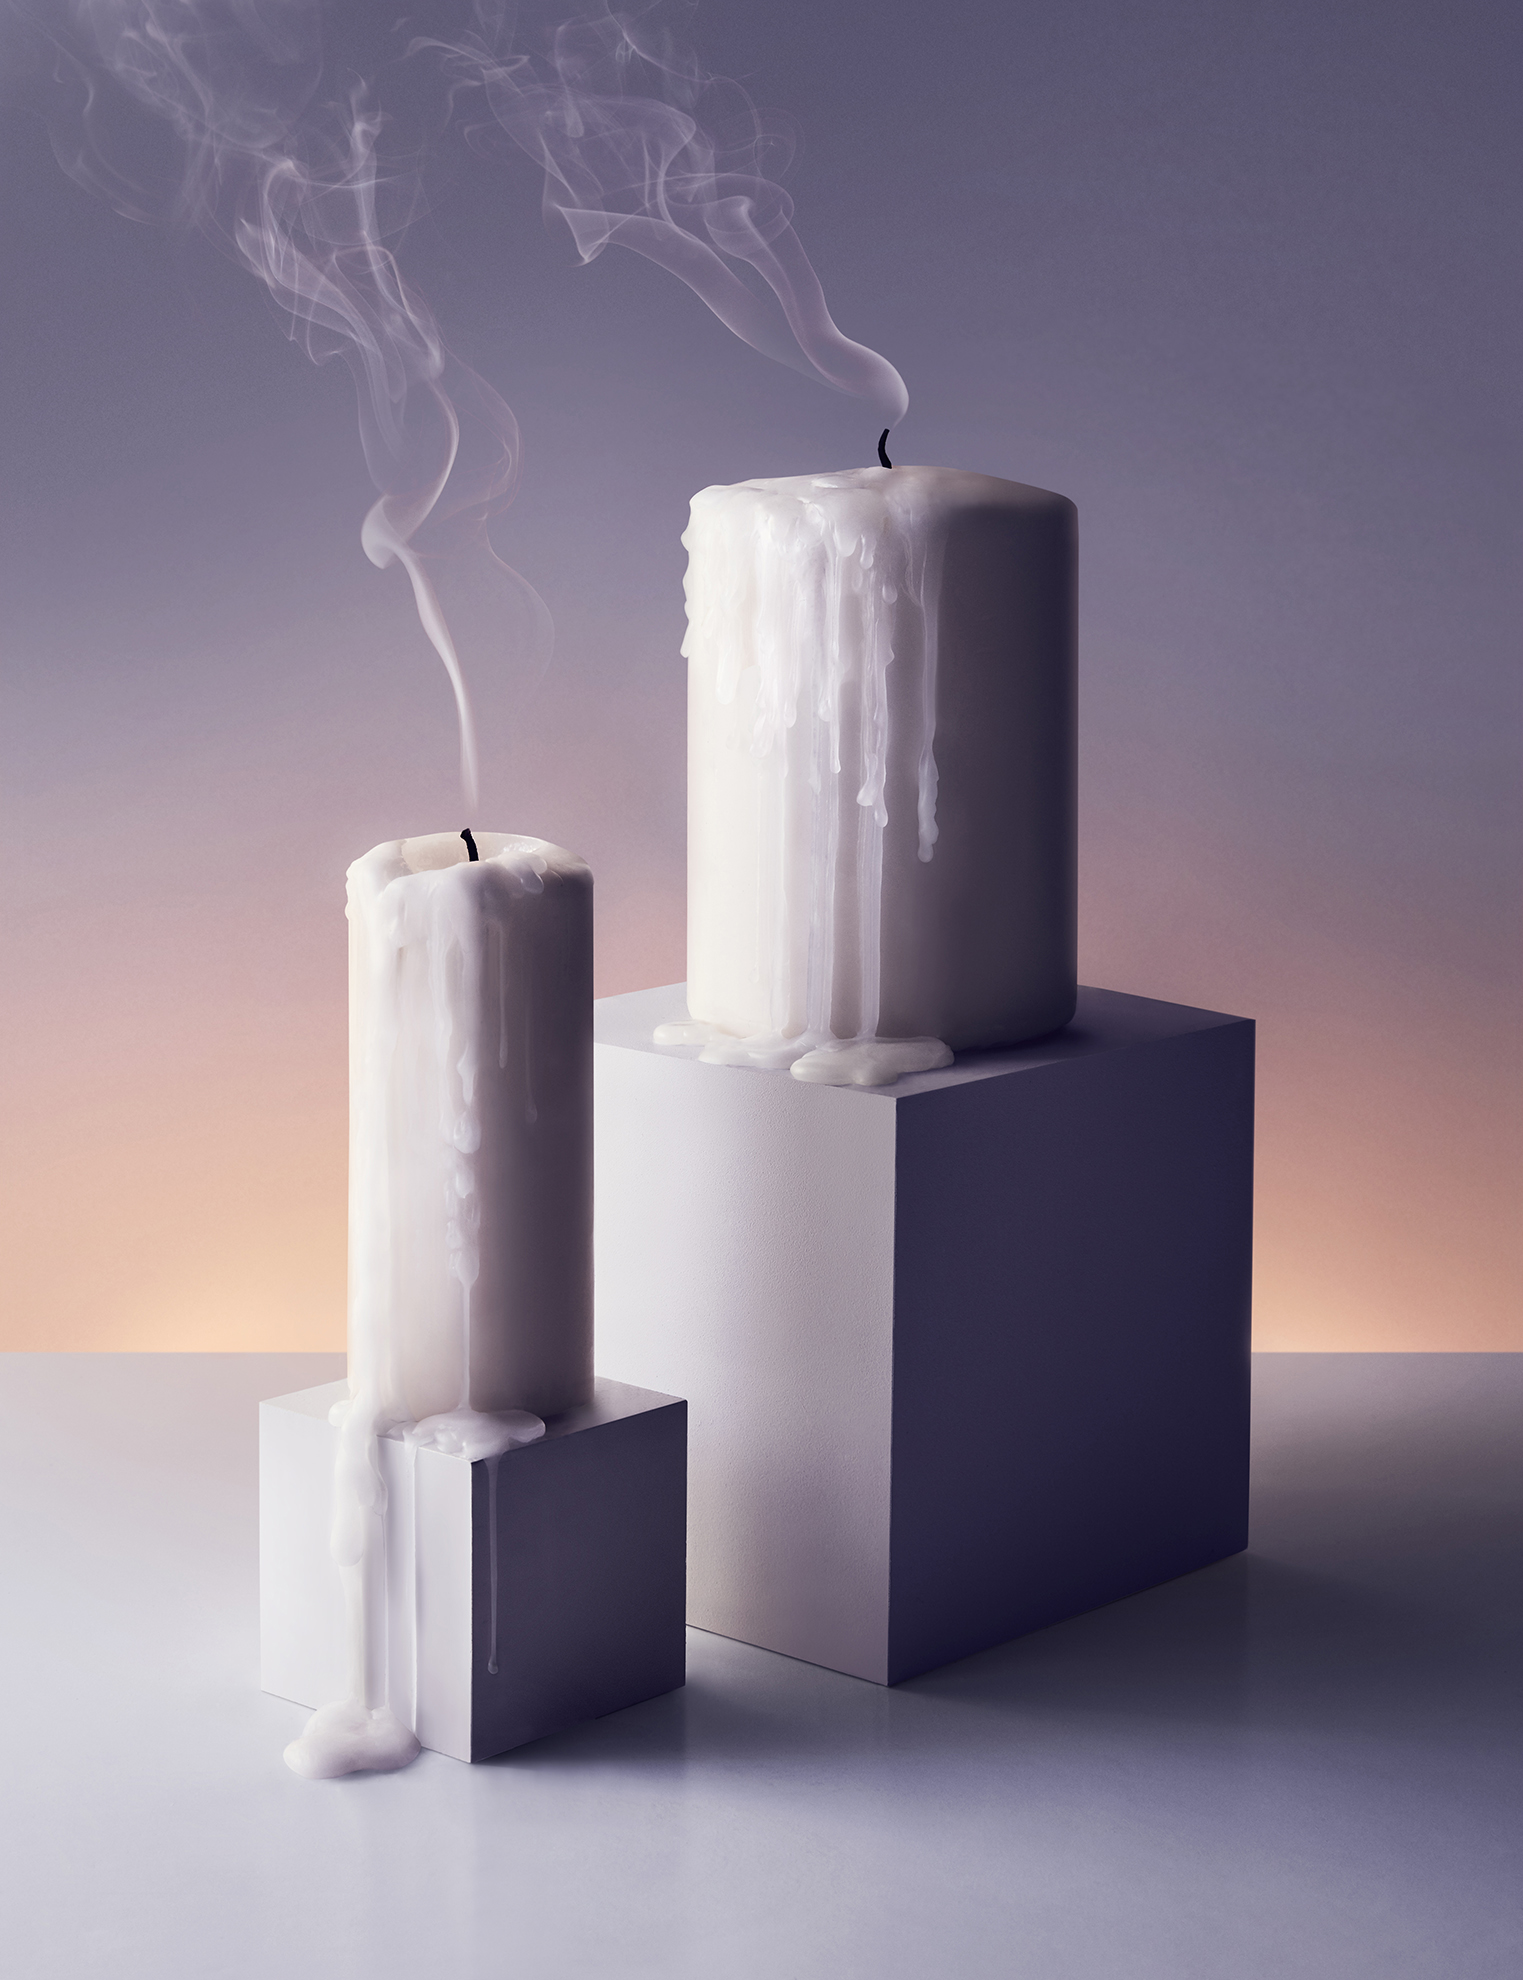 stil-life-photographer-london-nyc-paris-art-photography-joshua-caudwell-art-photo-candles-1.jpg